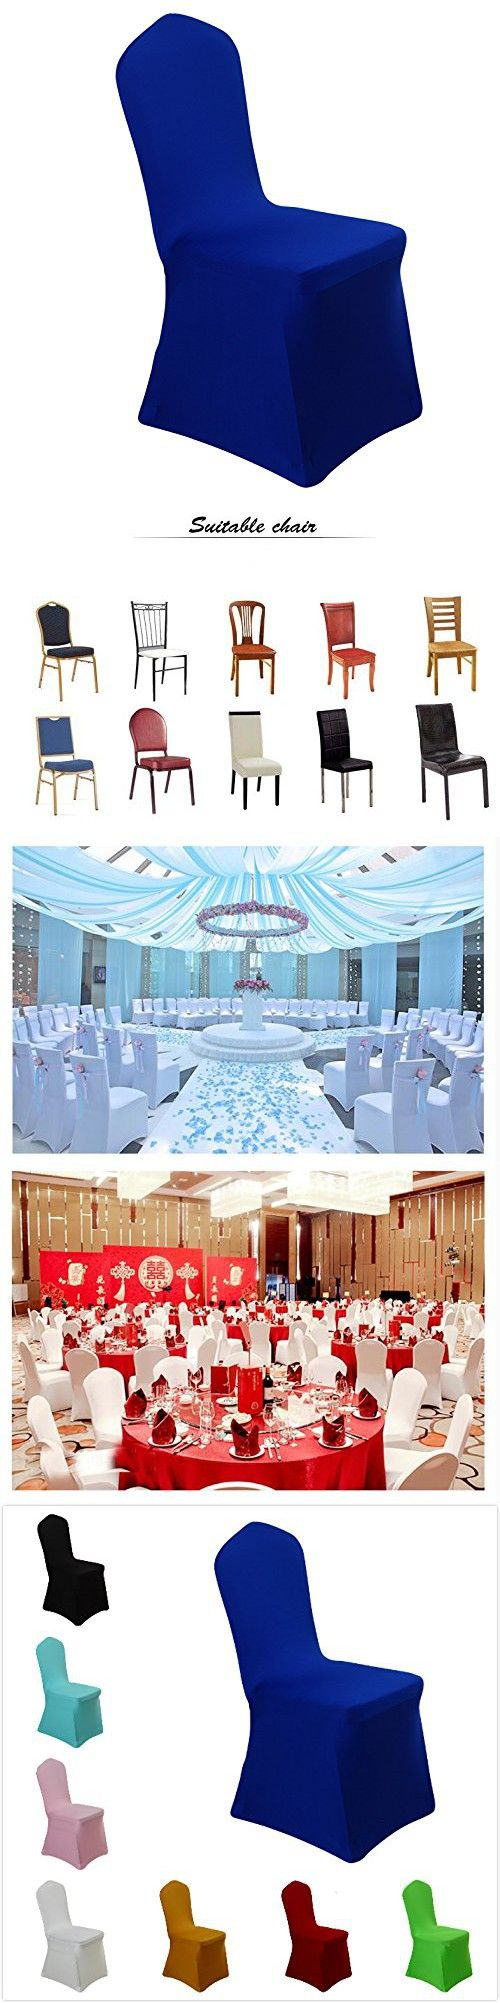 Custom ikea dining chair cover now available via comfort works - Uniquemystyle Stretch Polyester Spandex Dining Chair Cover For Wedding Banquet Party Many Colors Royal Blue